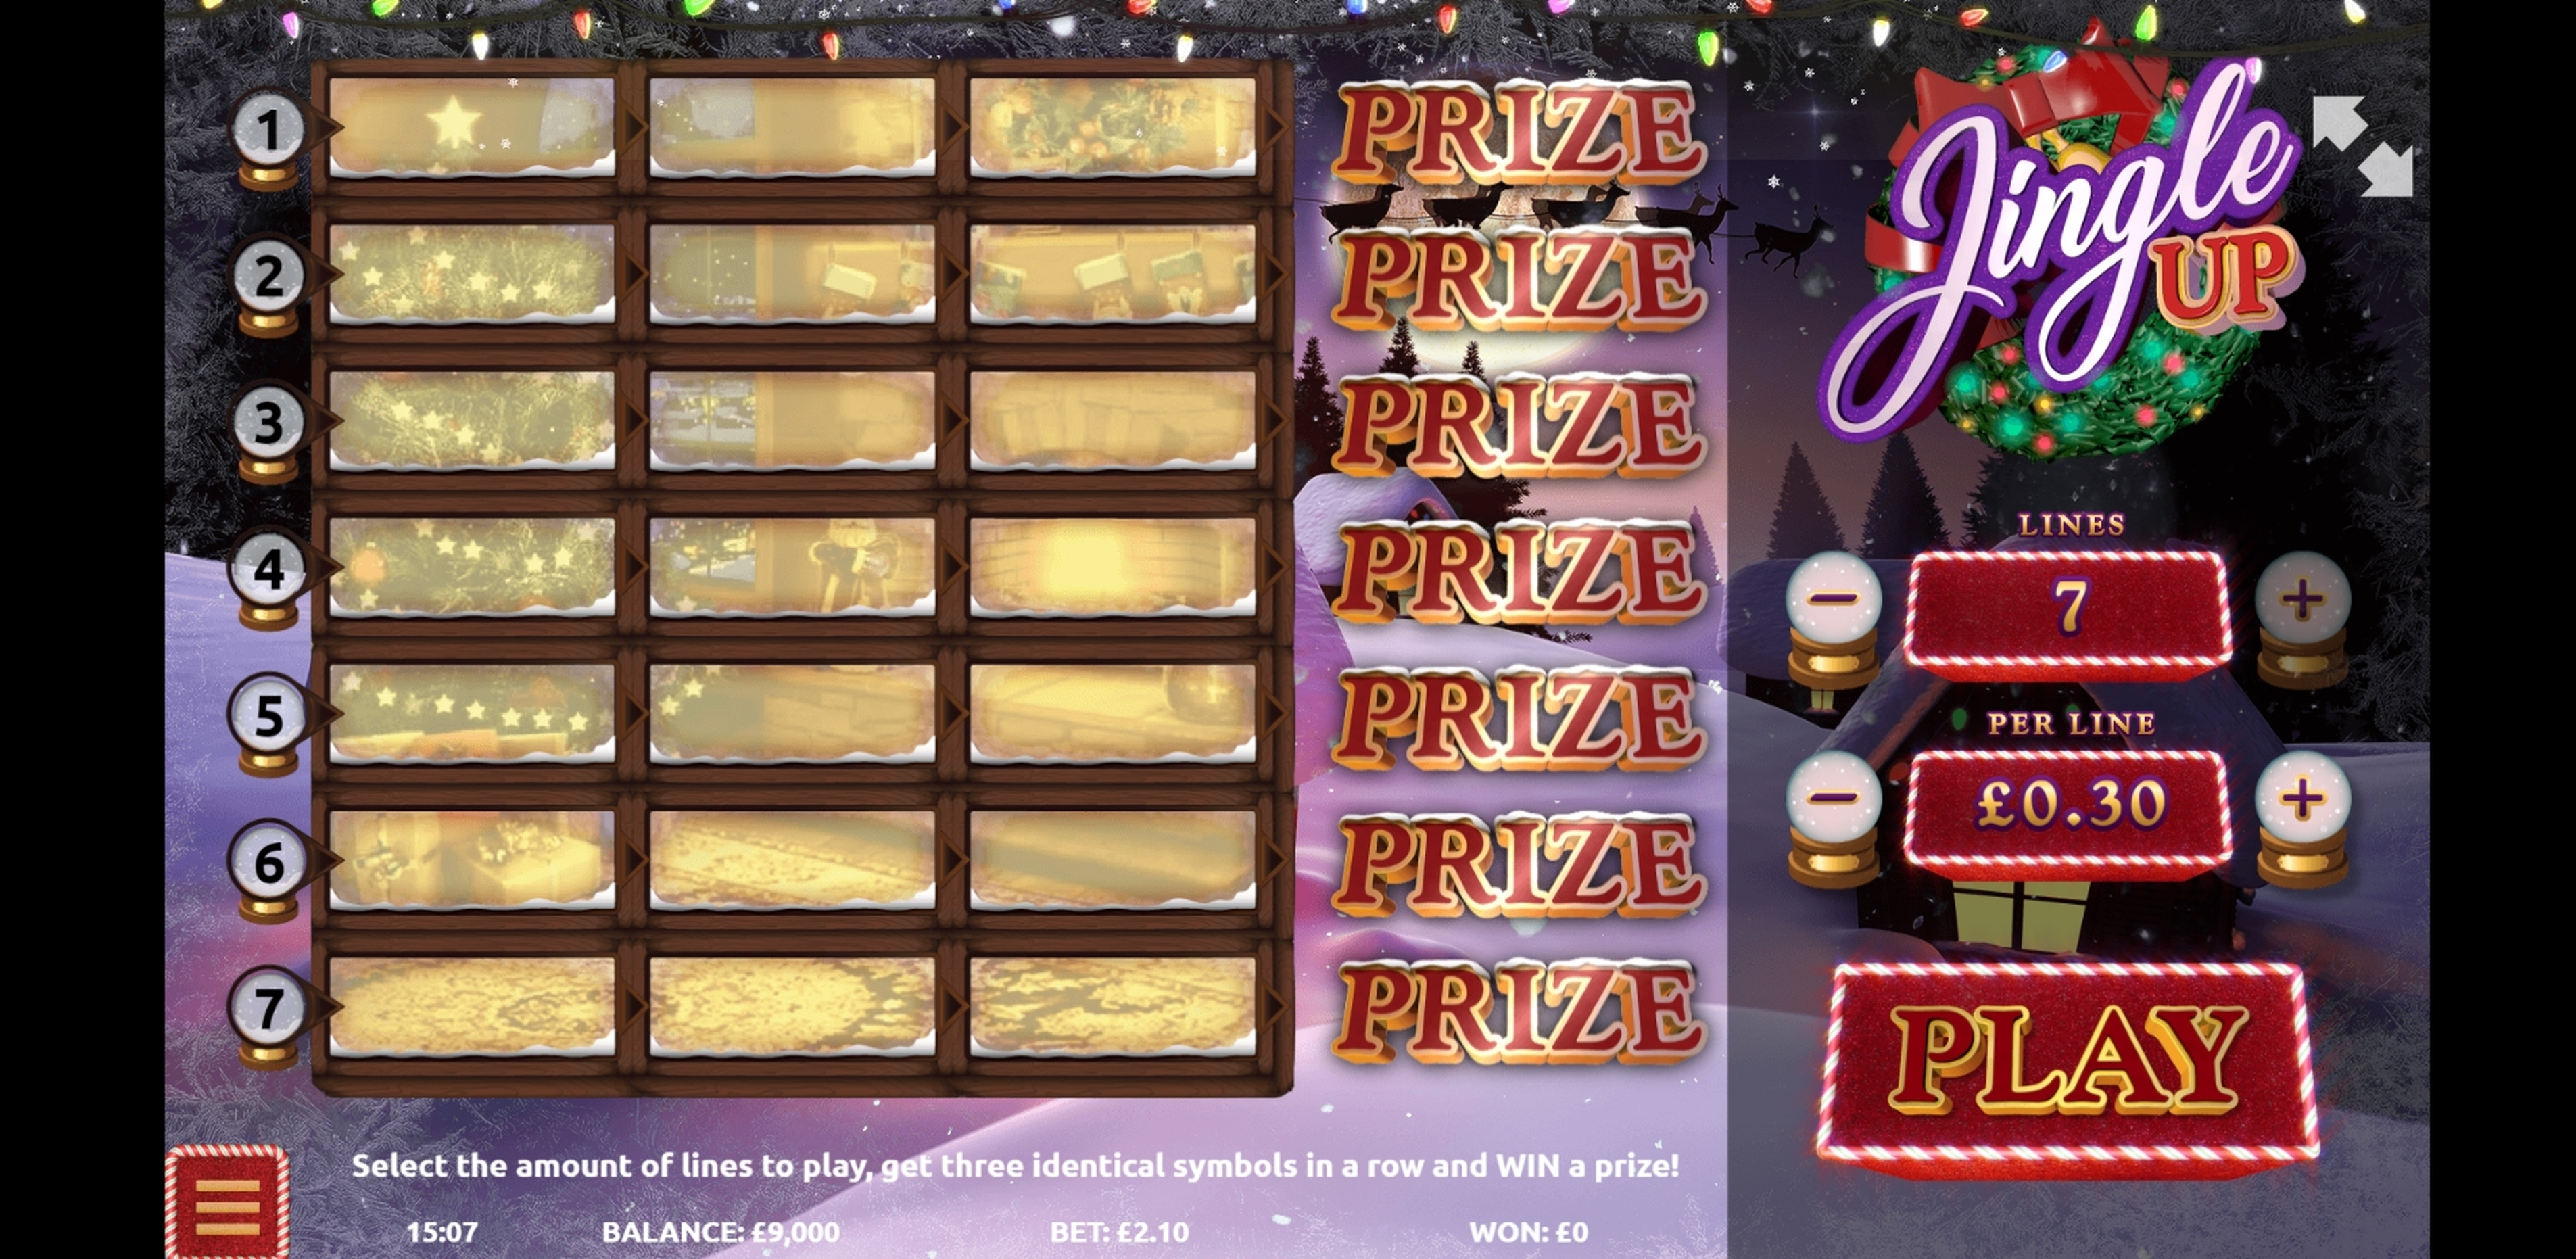 Reels in Jingle Up! Slot Game by Gamevy